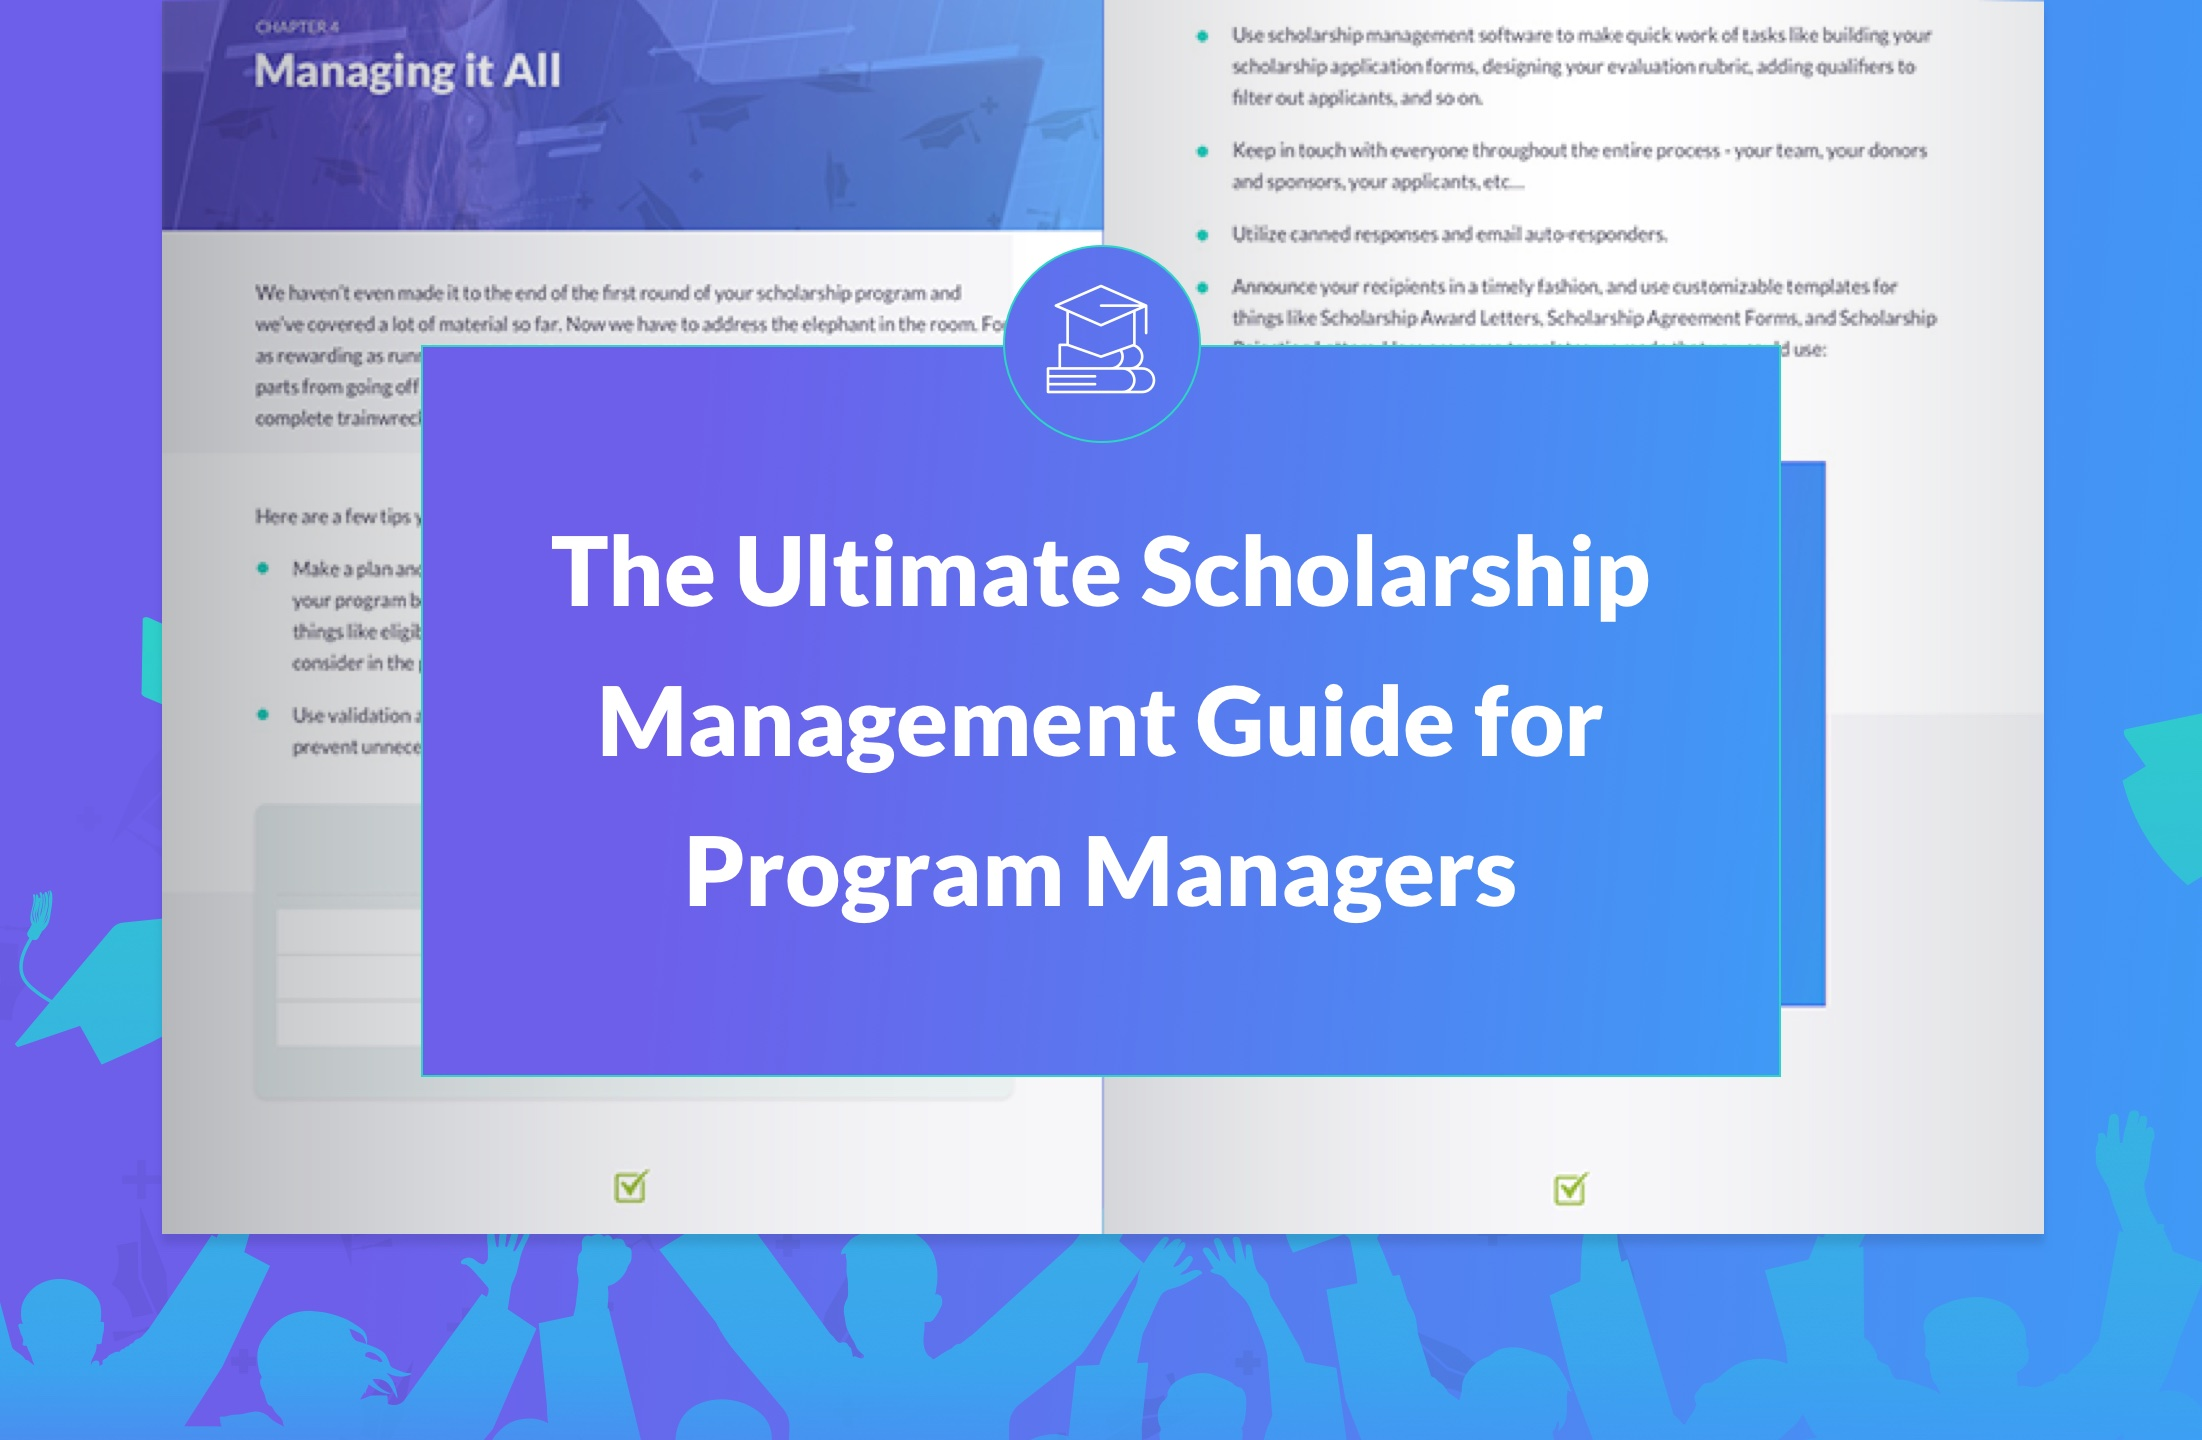 Resource-Card-The-Ultimate-Scholarship-Management-Guide-for-Program-Managers